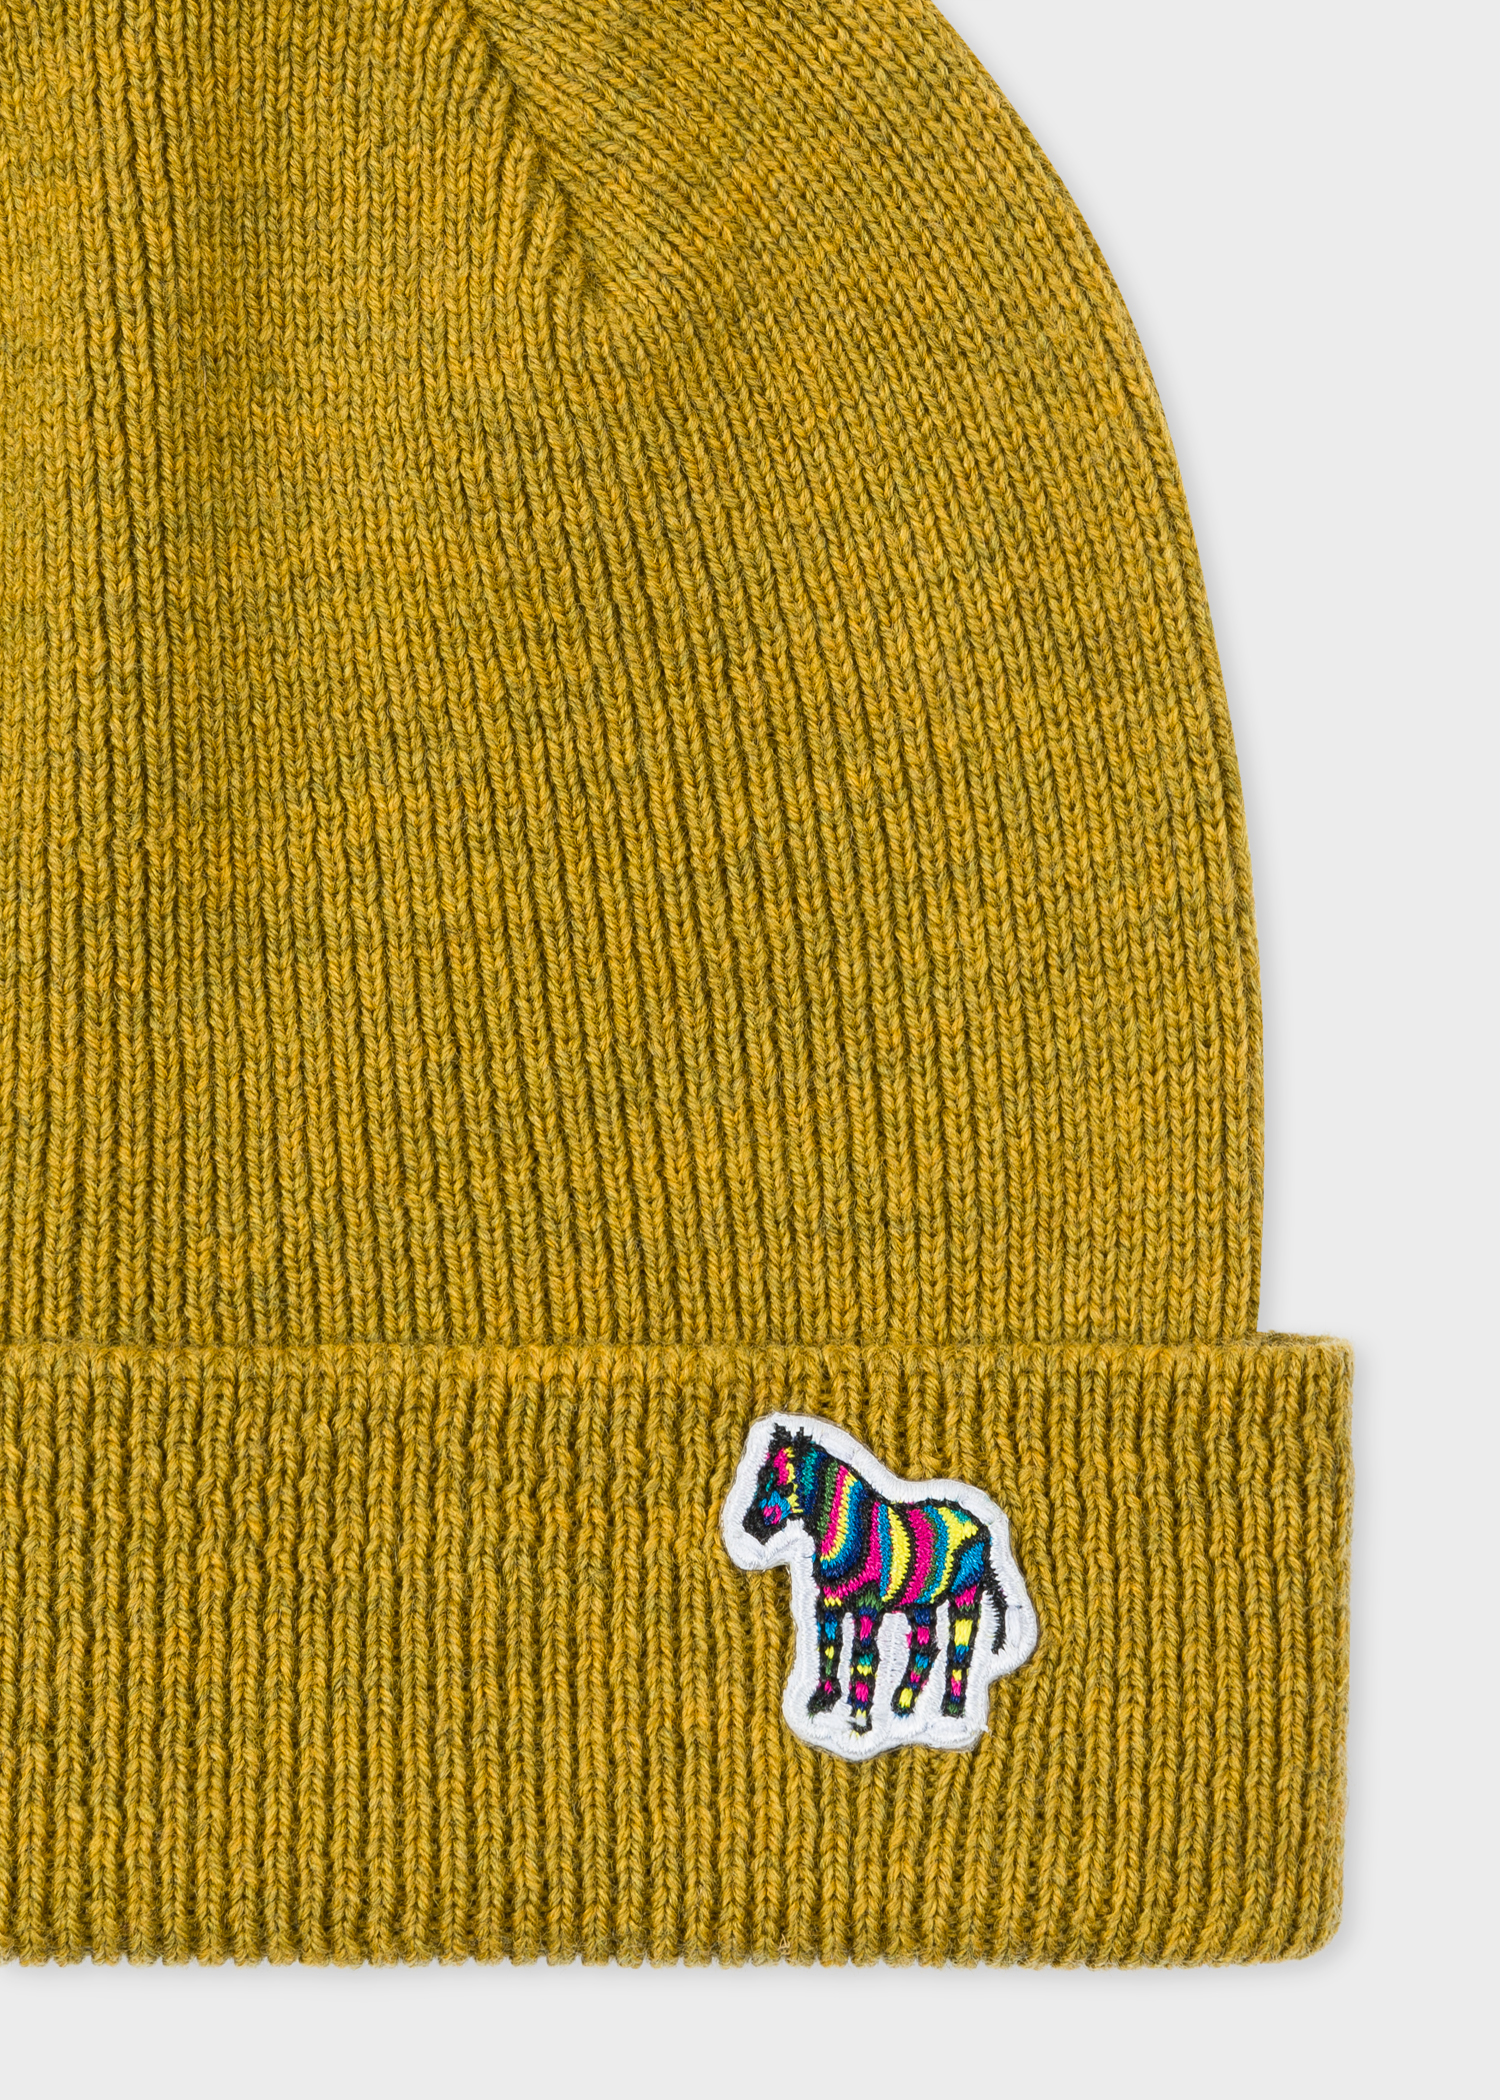 Men s Mustard  Zebra  Logo Ribbed Lambswool Beanie Hat - Paul Smith Asia f84719d07e0